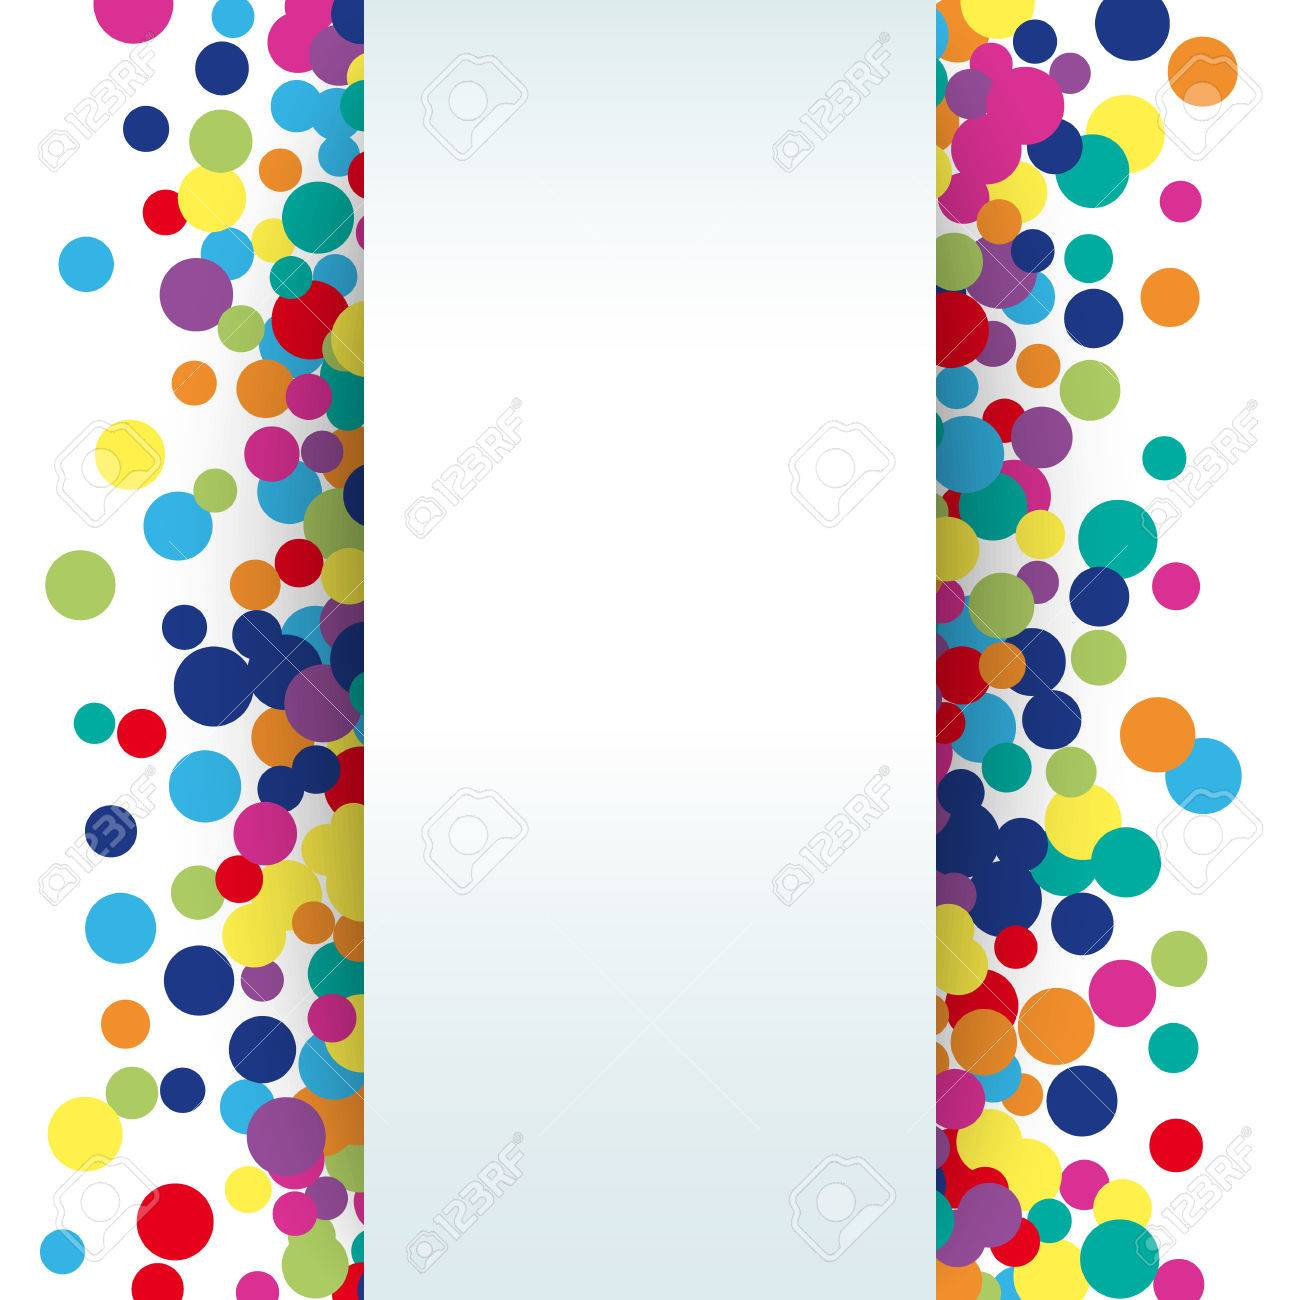 colorful abstract spot background illustration for bright design